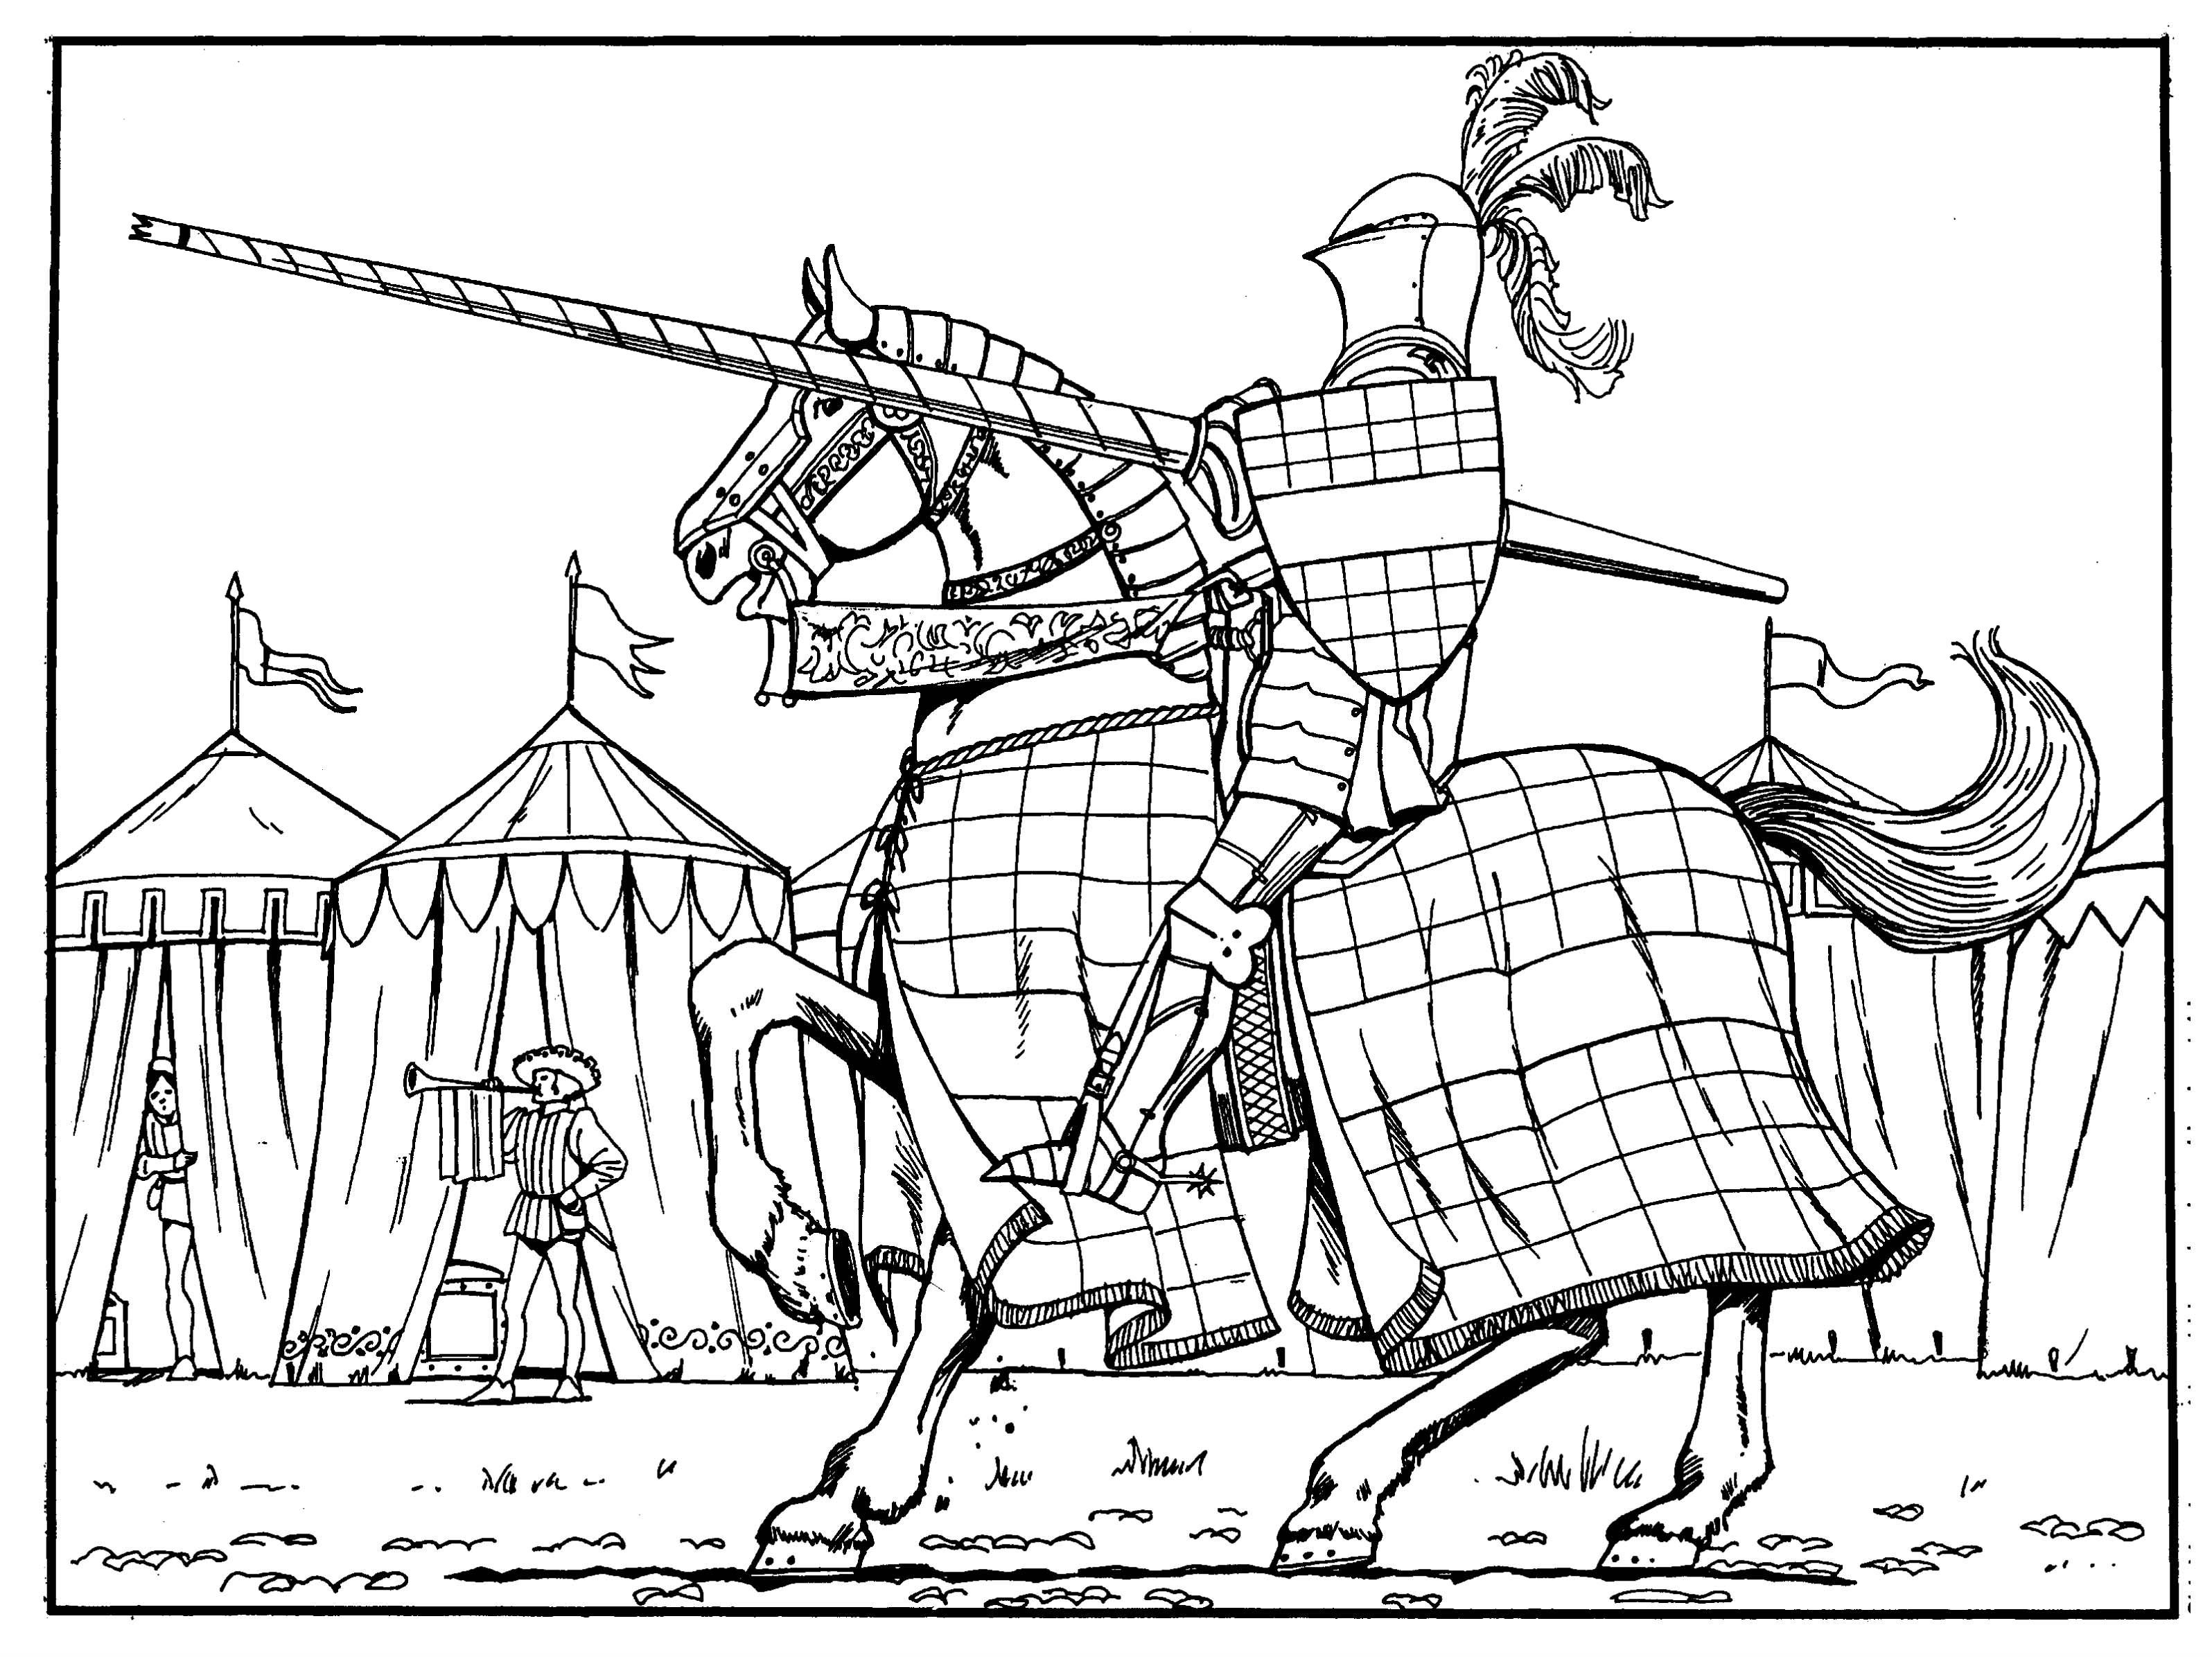 knight on horse coloring page knight on horse coloring page free printable coloring pages page horse coloring on knight